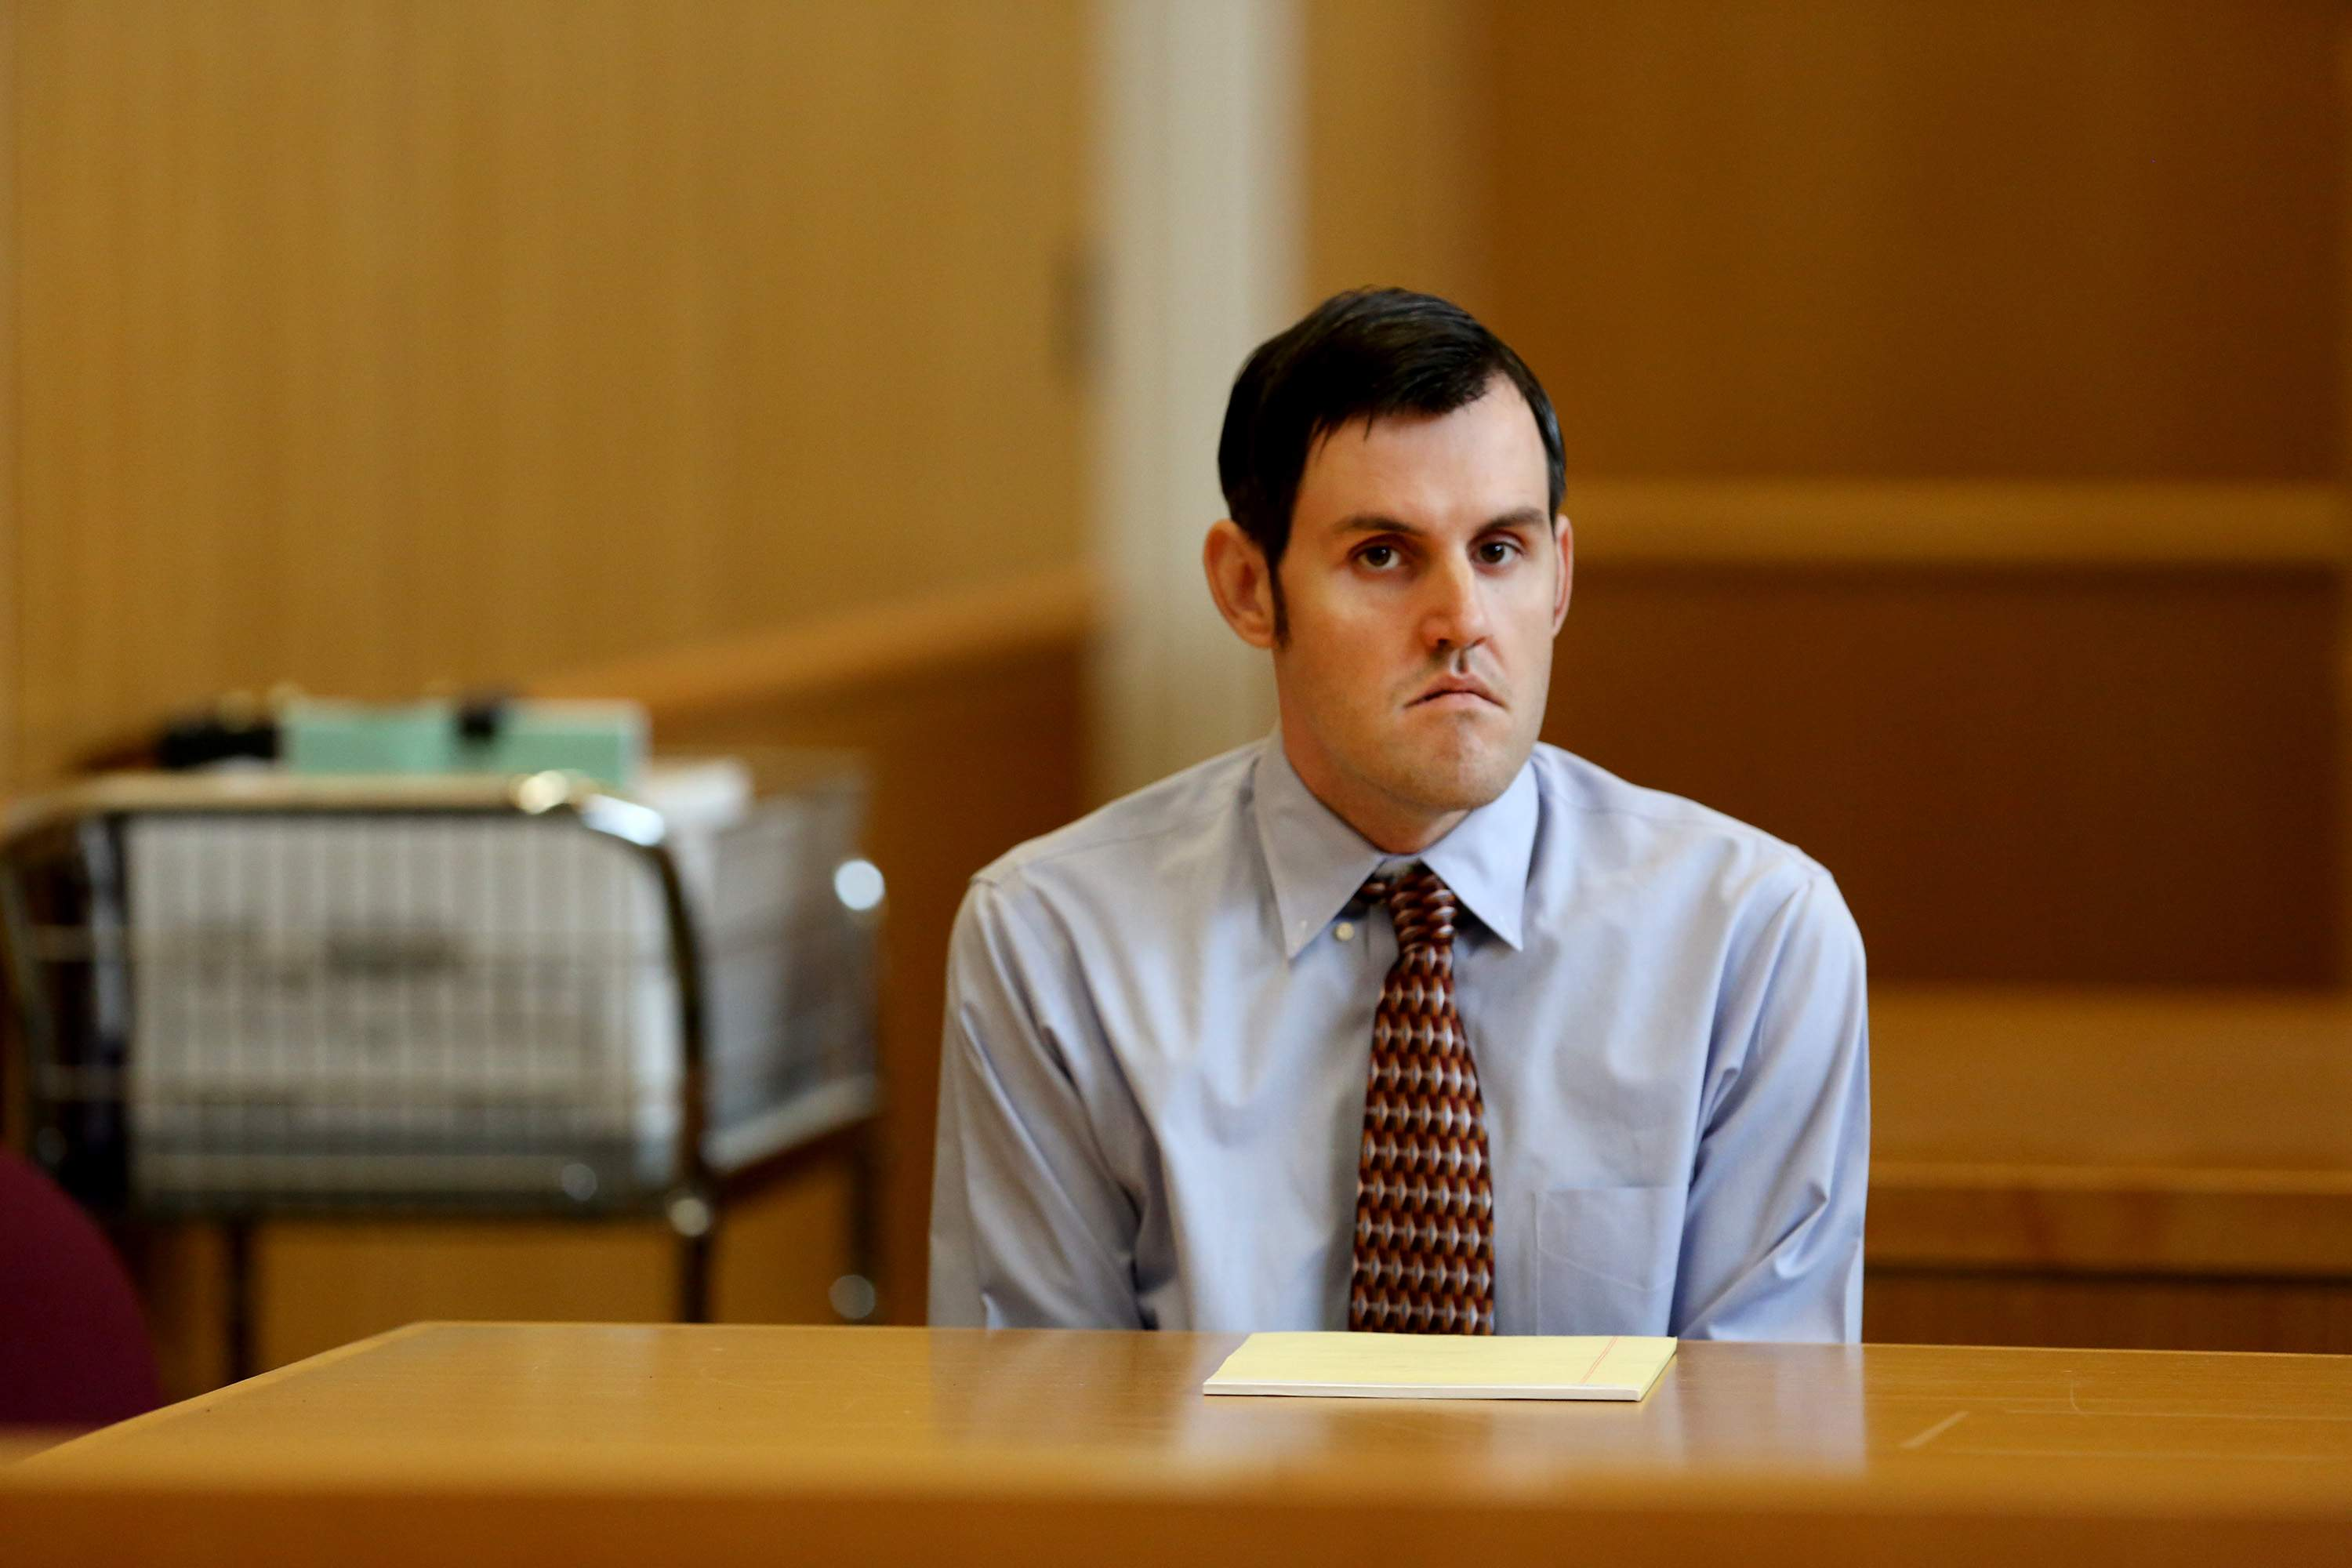 Teary, frustrating, haunting: Inside the room where jurors